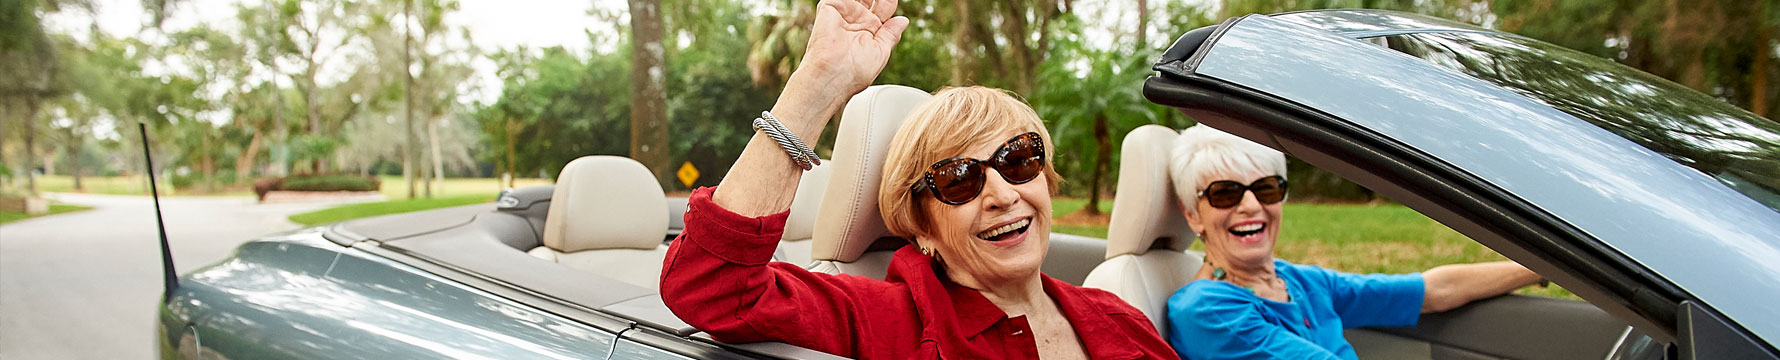 Two senior ladies riding around in a silver convertible with the top down